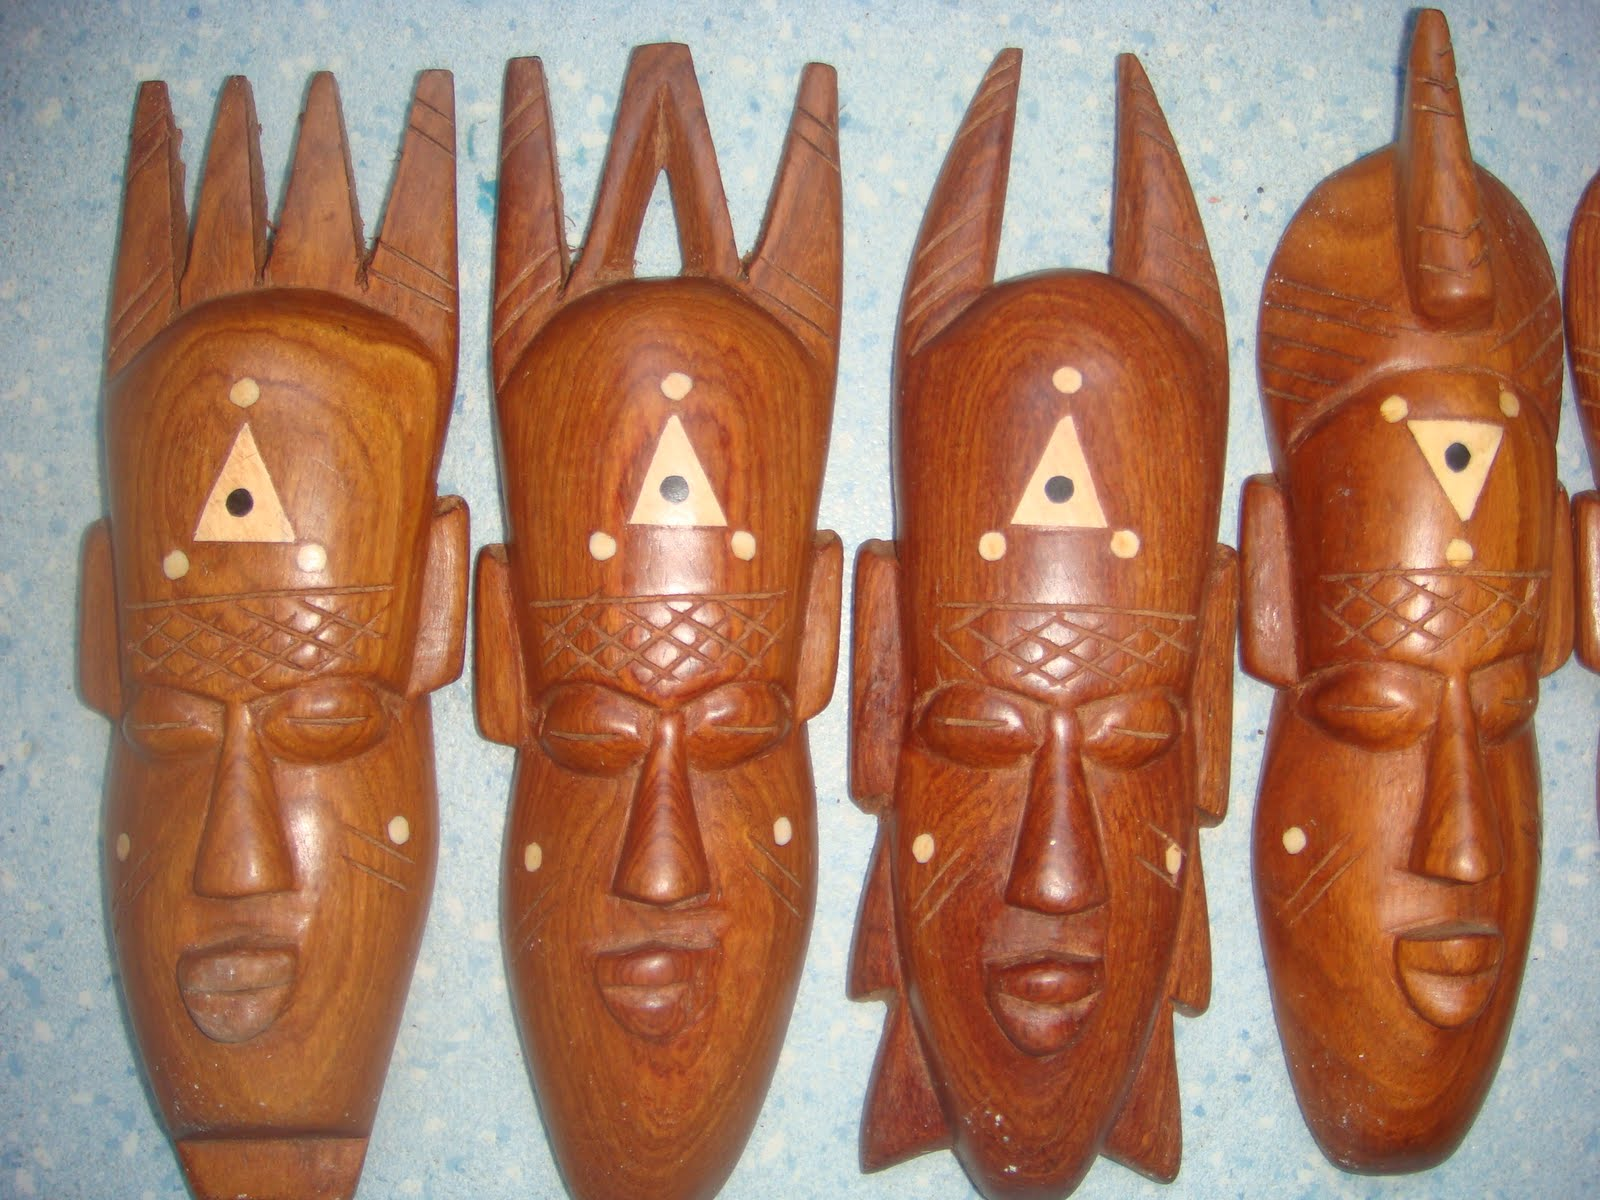 masque africain signification jour semaine